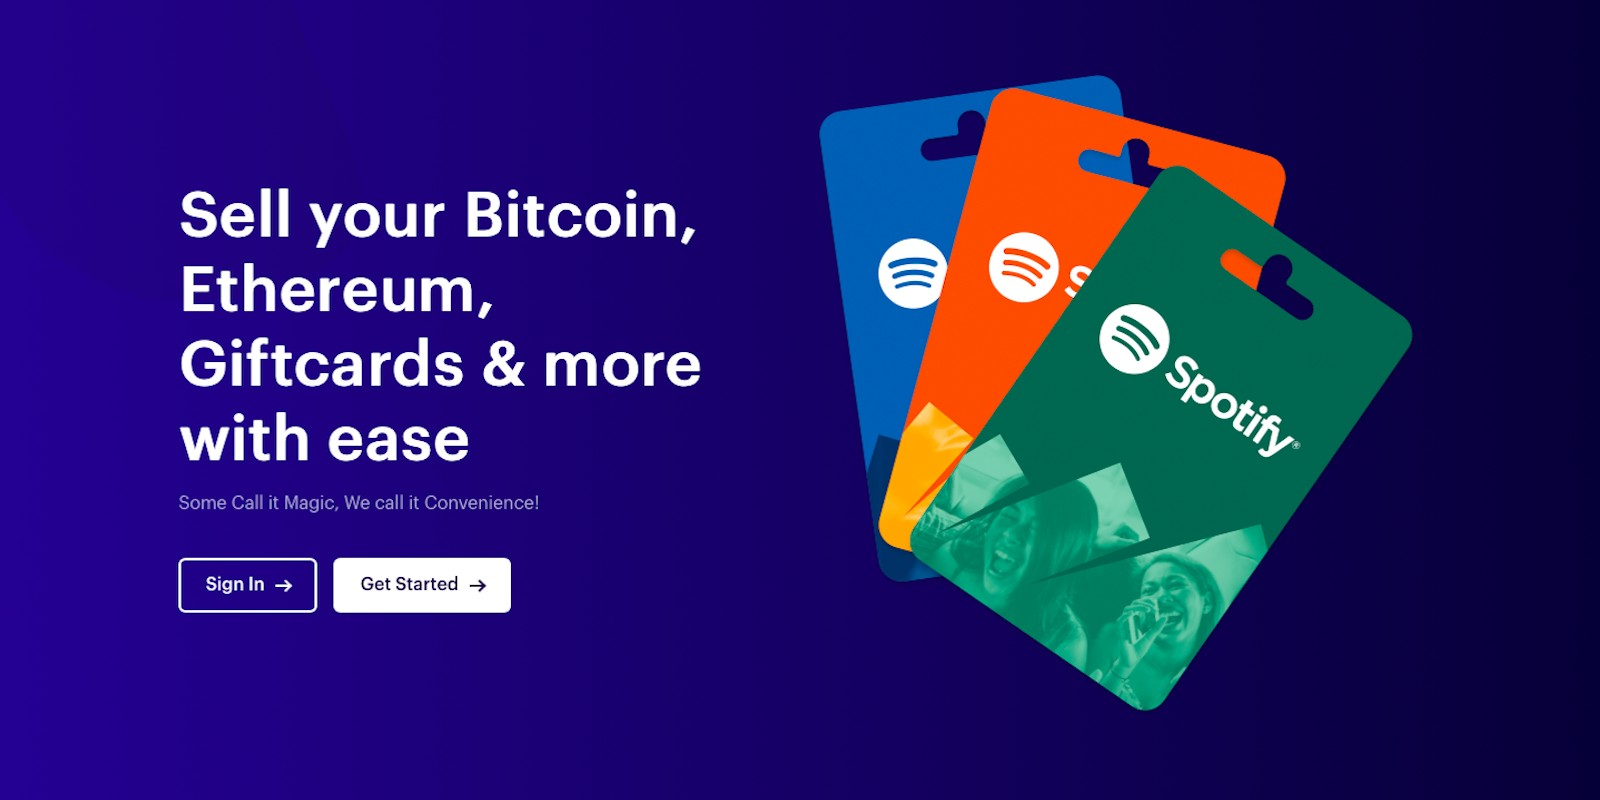 Giftworld - Giftcard And Bitcoin Trading Platform